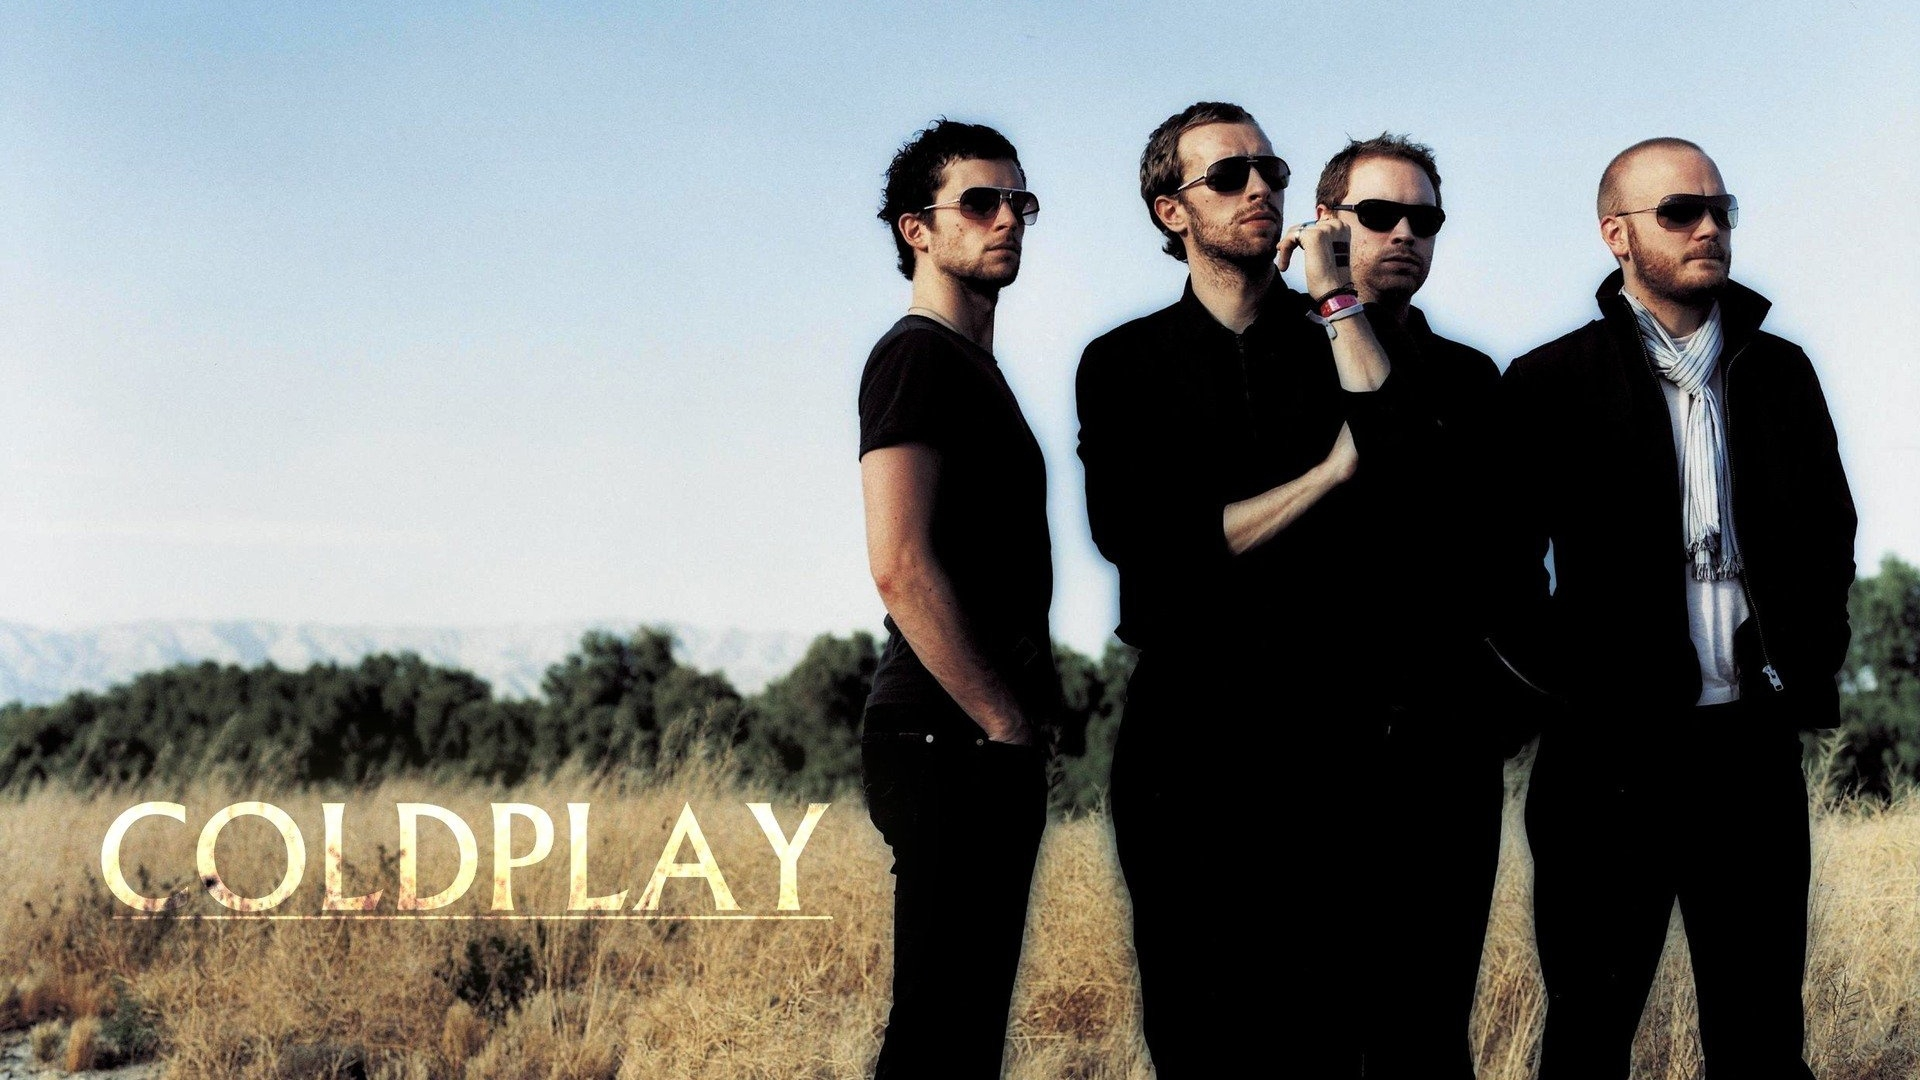 1366x768 Coldplay Band 1366x768 Resolution HD 4k Wallpapers, Images, Backgrounds, Photos and